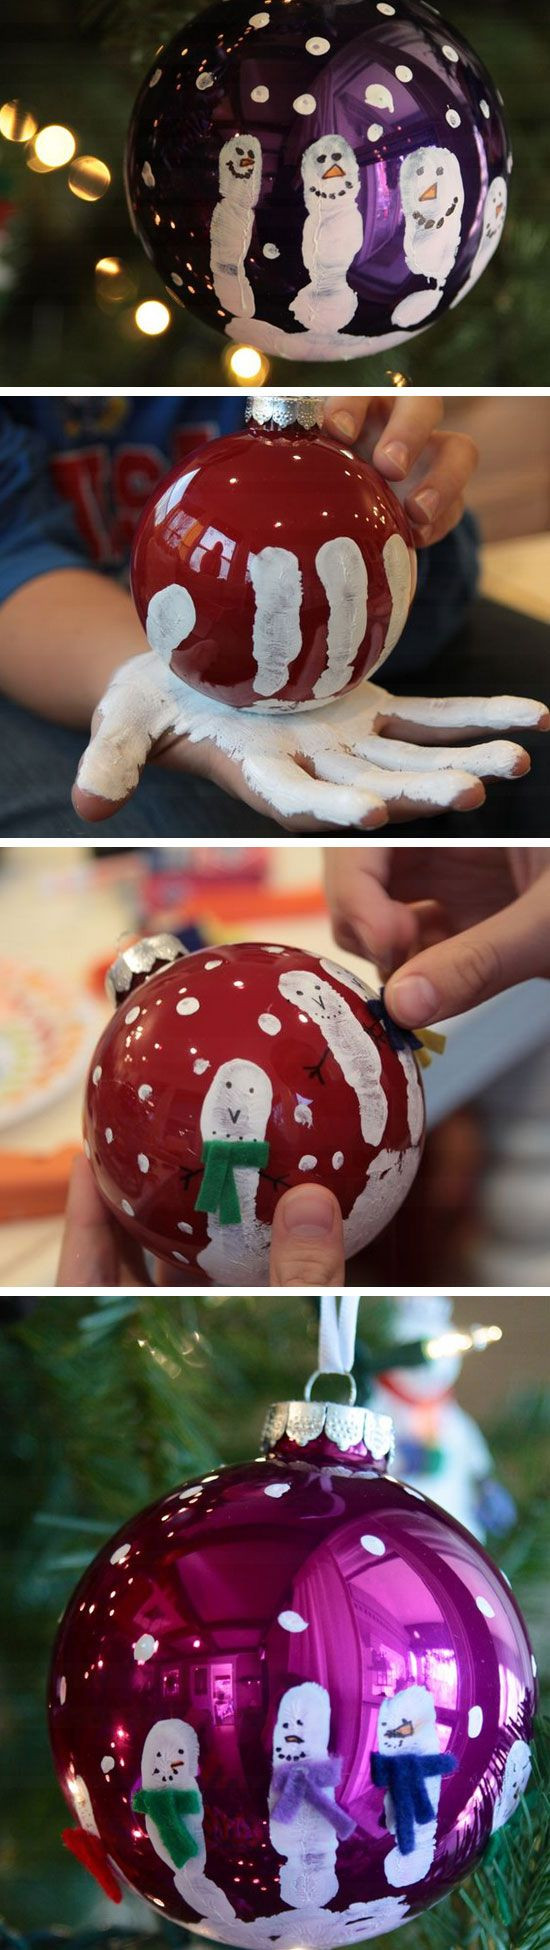 DIY Craft For Toddlers  Easy and Cute DIY Christmas Crafts for Kids to Make Hative